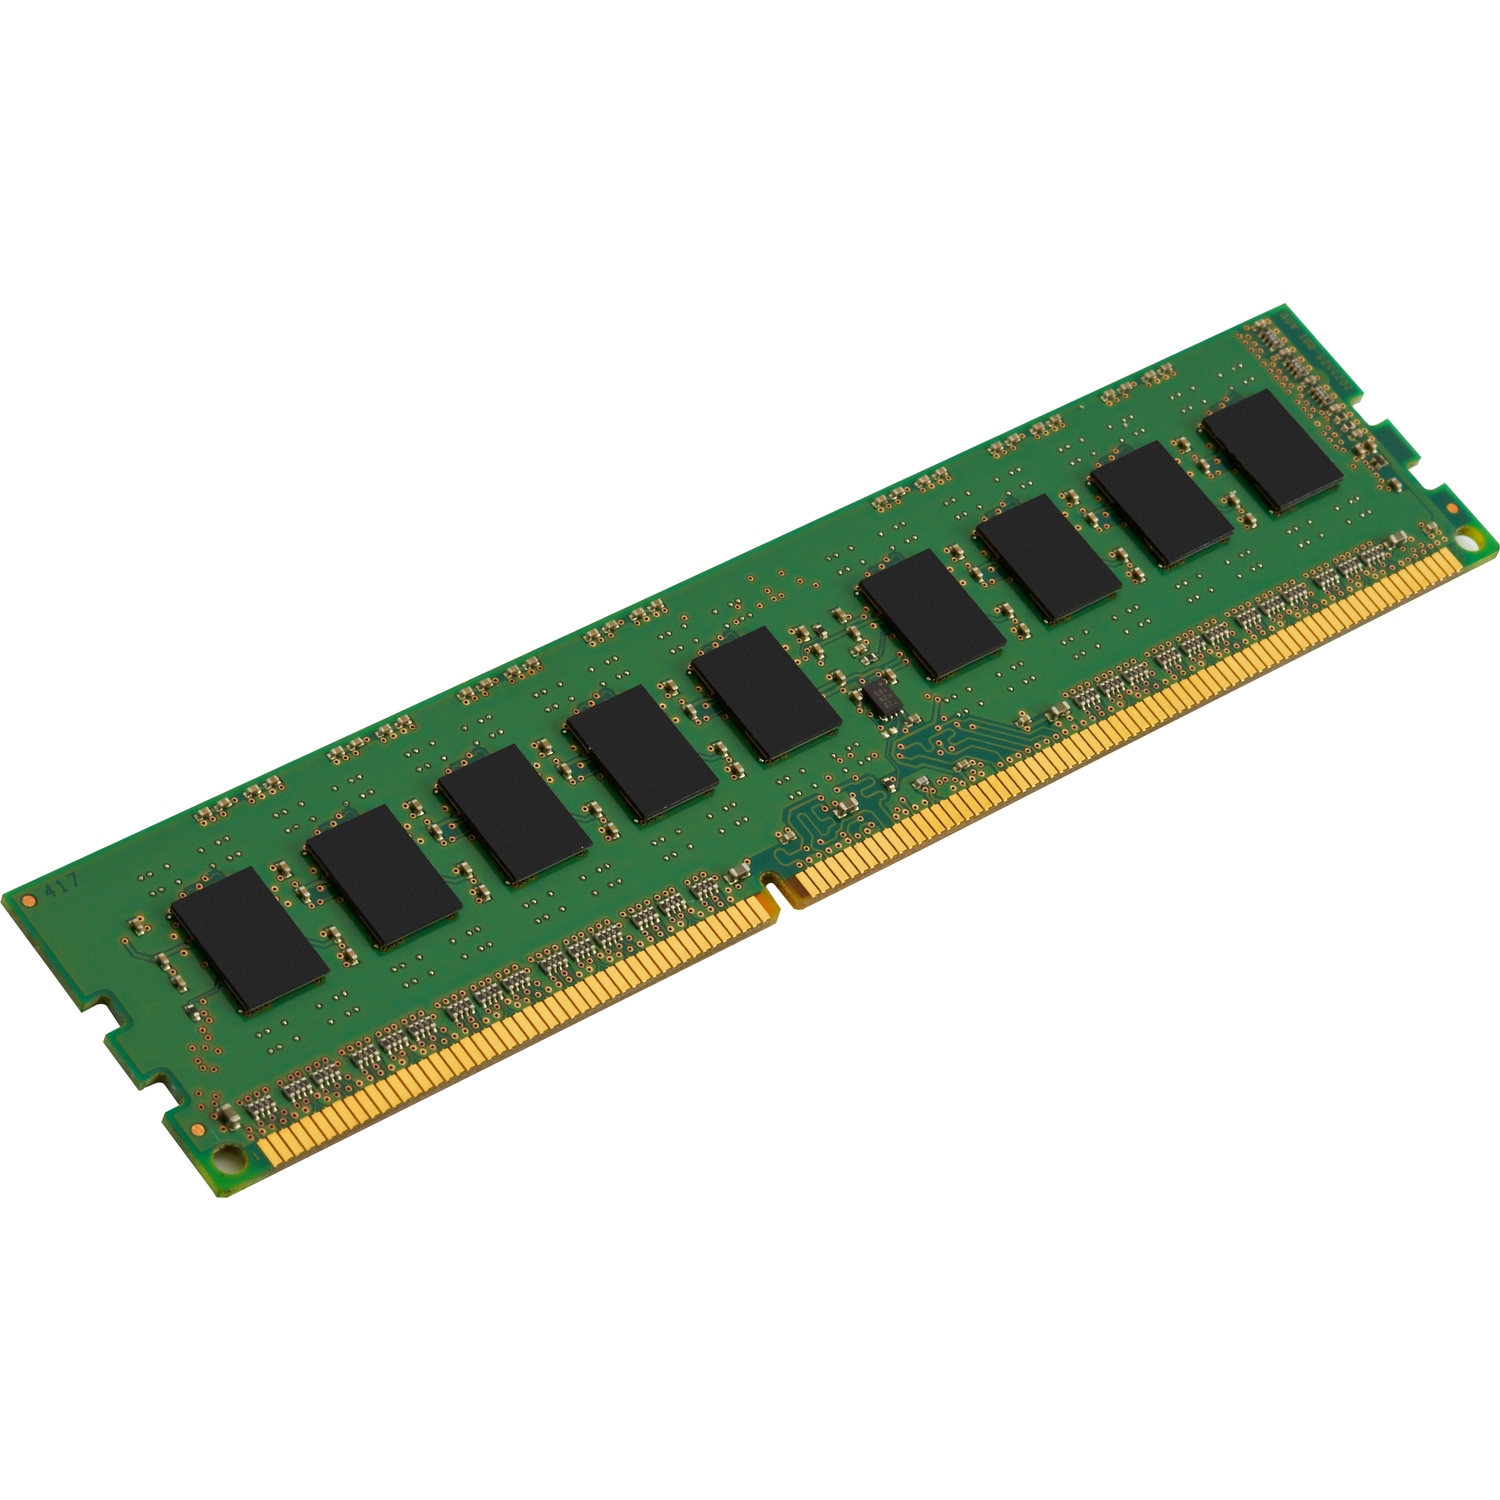 Kingston ValueRAM RAM Module - 8 GB 1 x 8 GB - DDR3 SDRAM - 1600 MHz - 1.35 V - ECC - Unbuffered - CL11 - 240-pin - DIMM